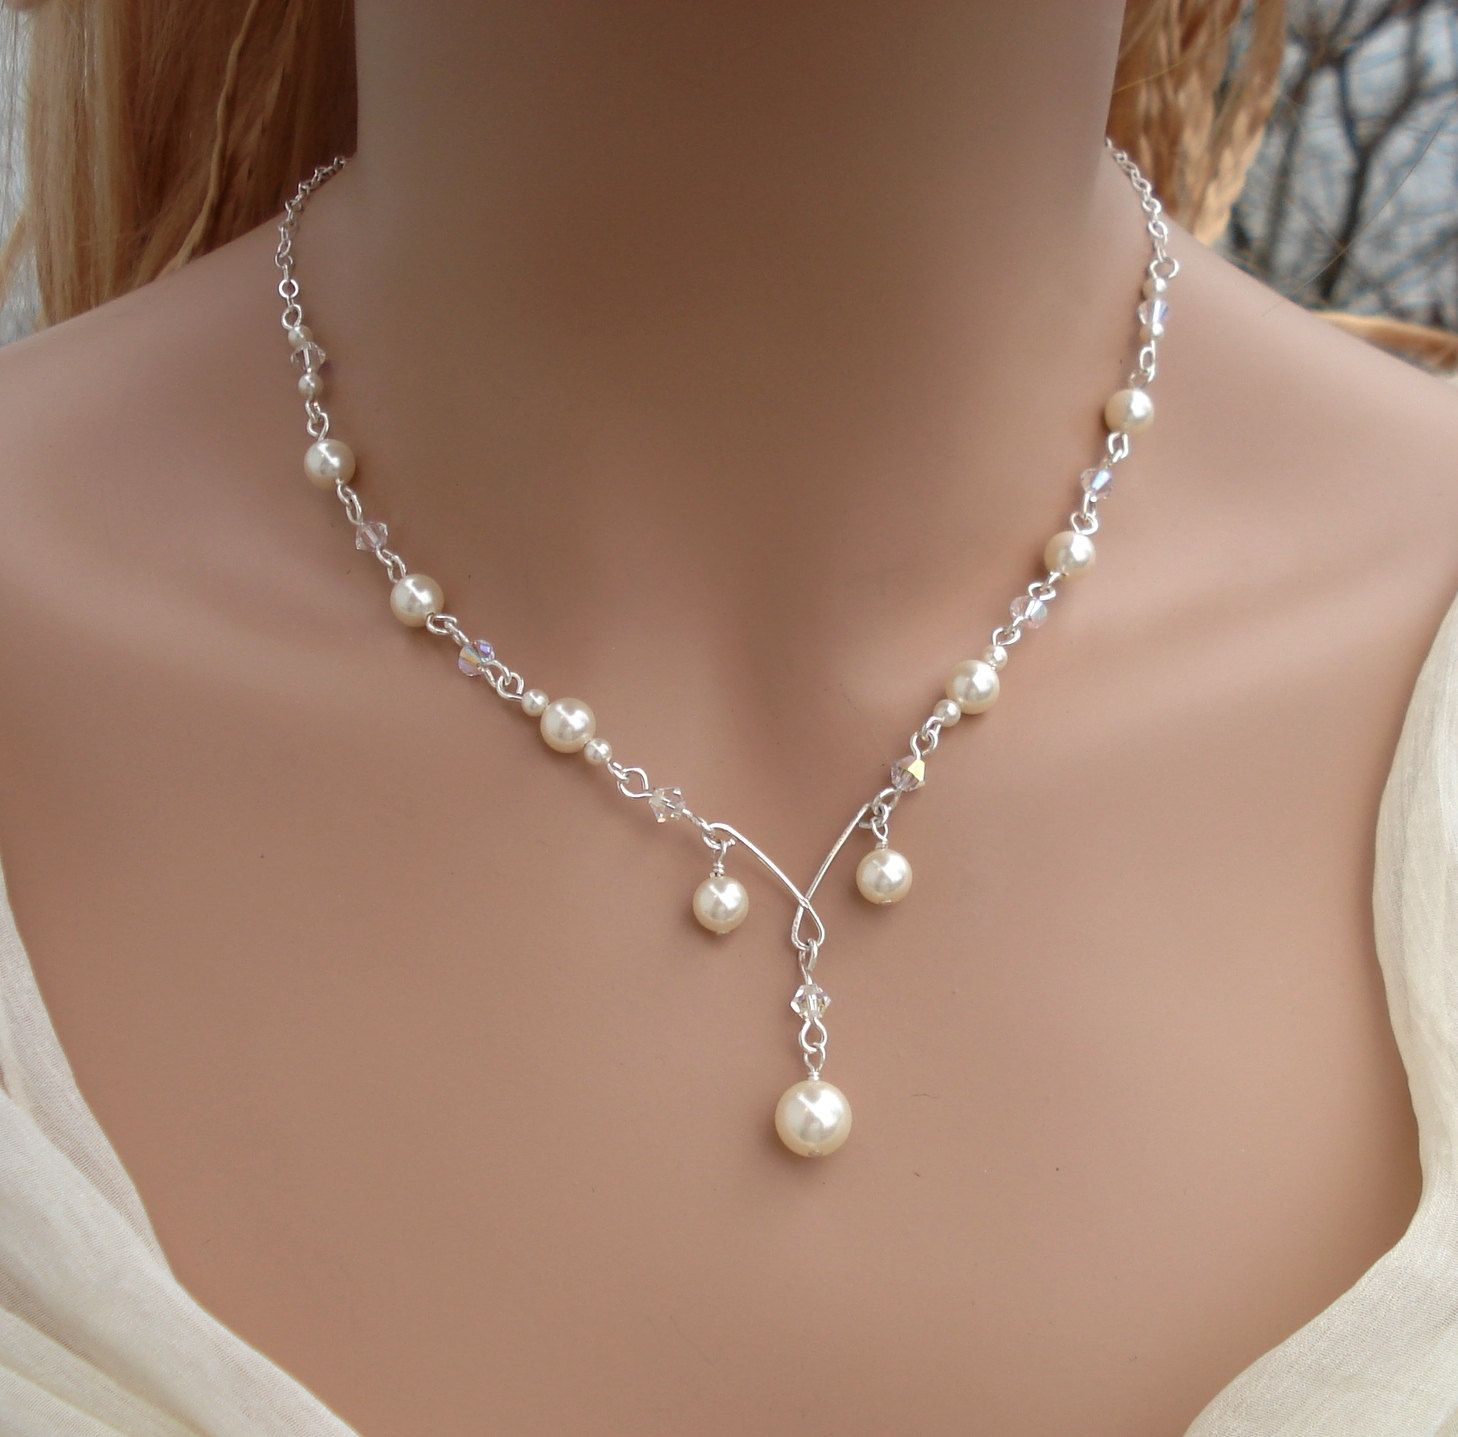 Elegant bridal jewelry wired crystal creamivory pearl necklace